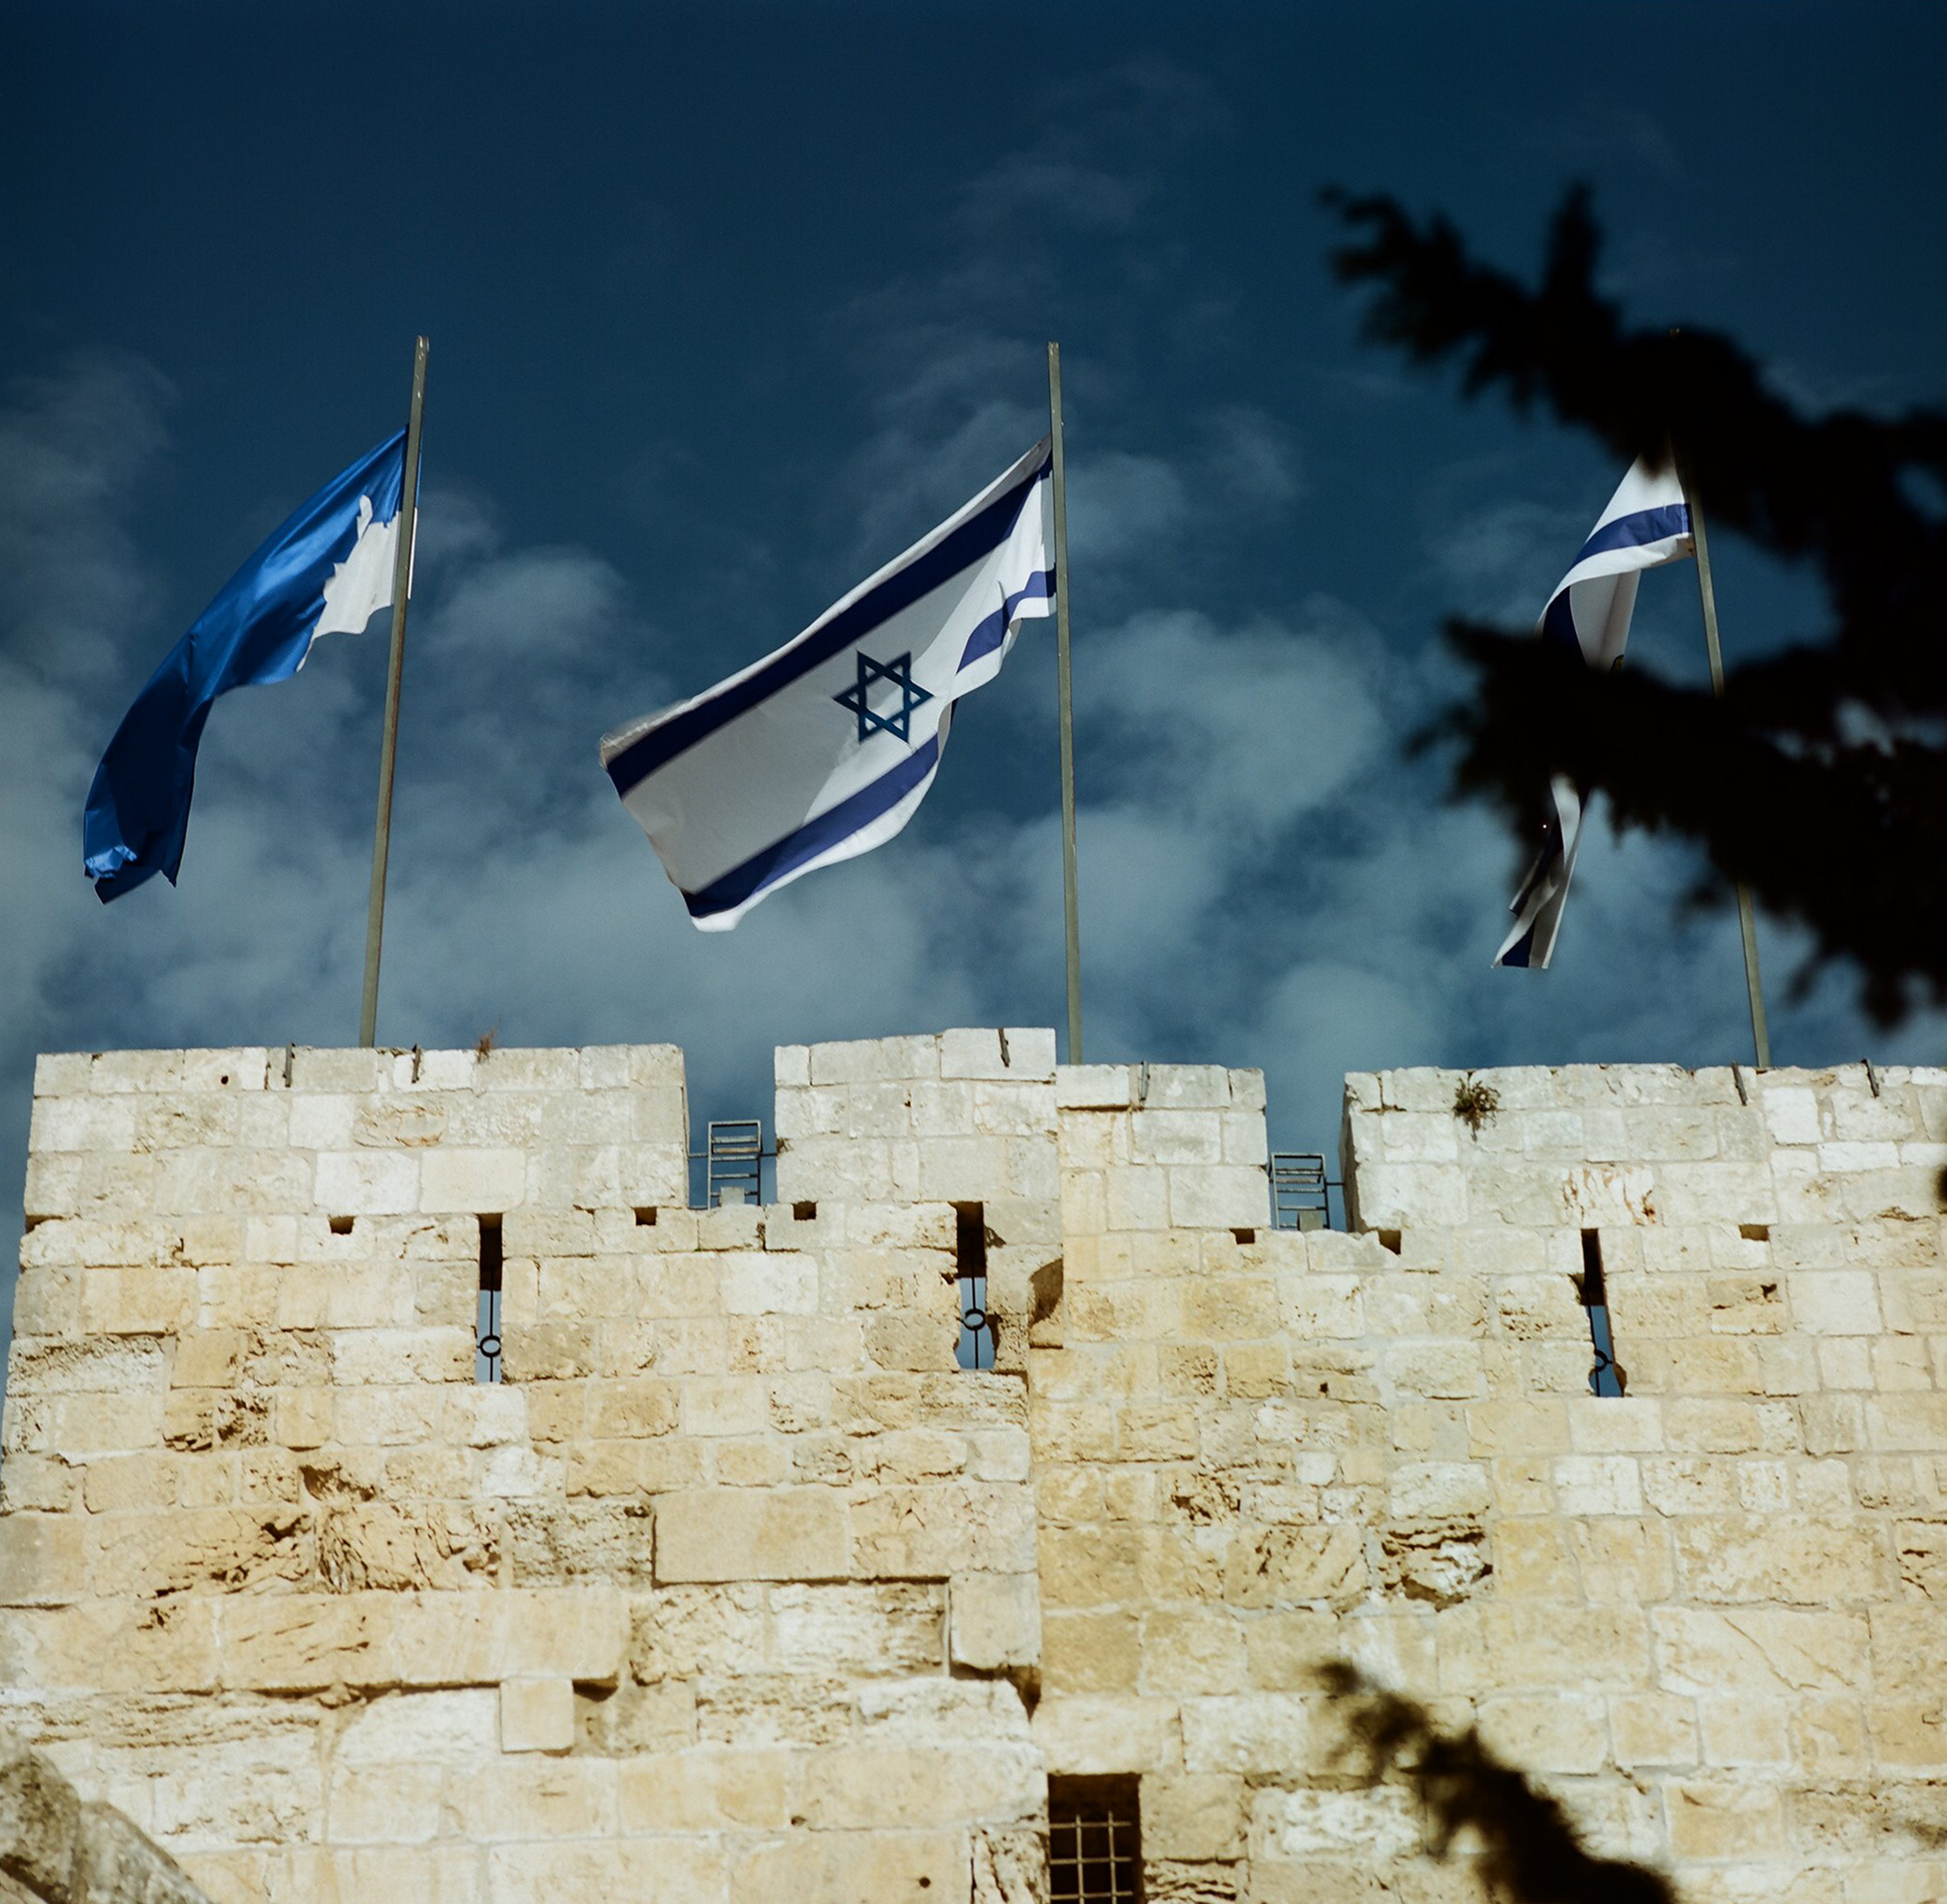 Flags of Israel and the City of Jerusalem atop David's Tower, part of the Ottoman city walls of Jerusalem.